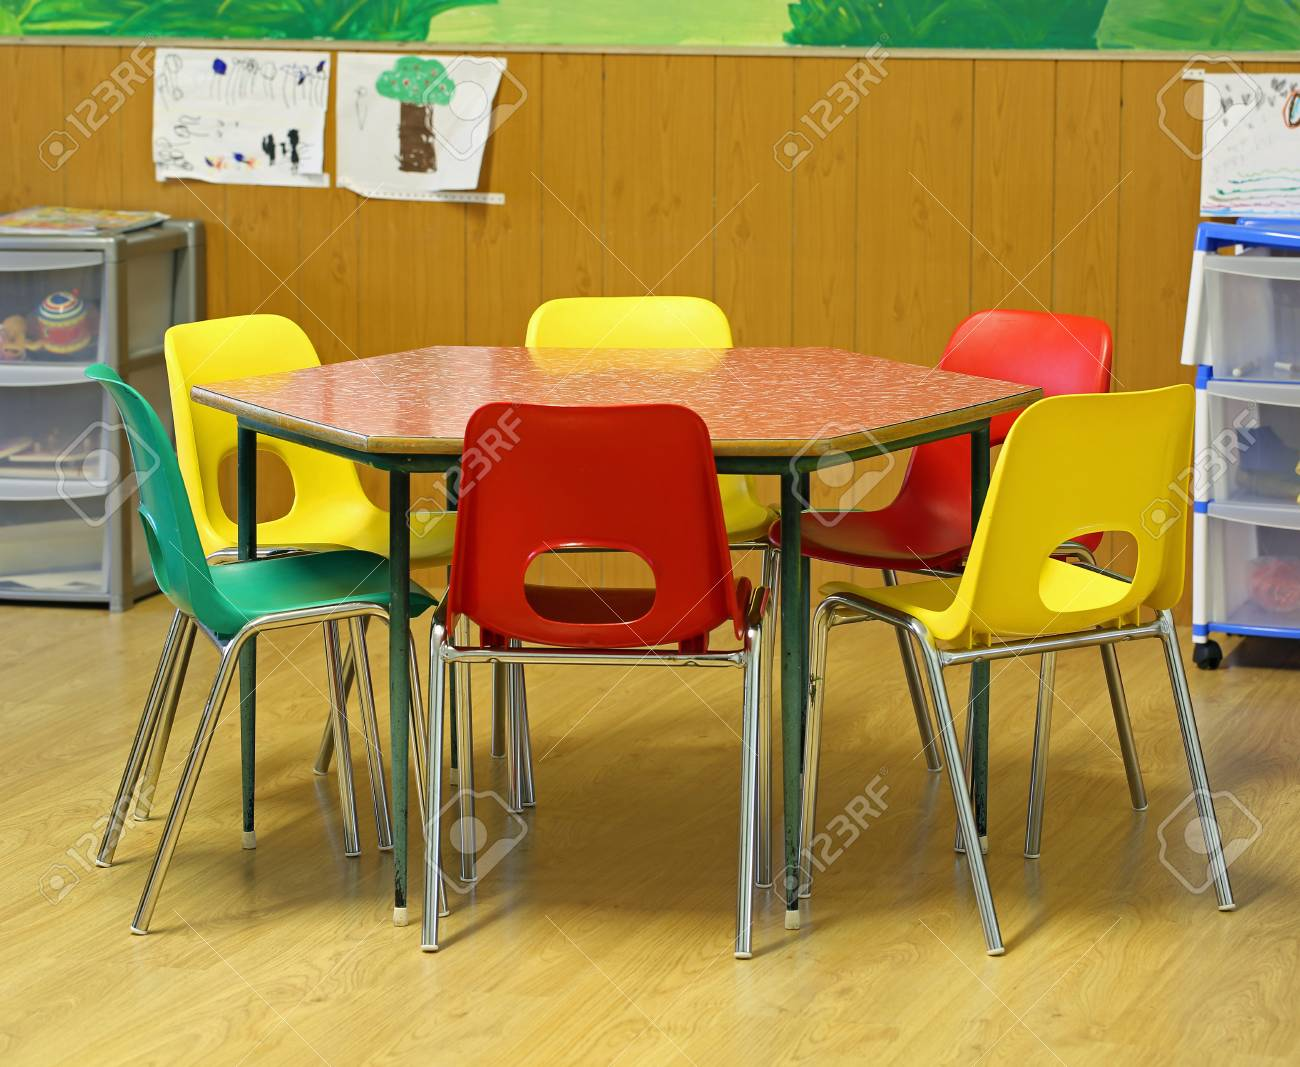 hexagonal table with small chairs in elementary school with parquet